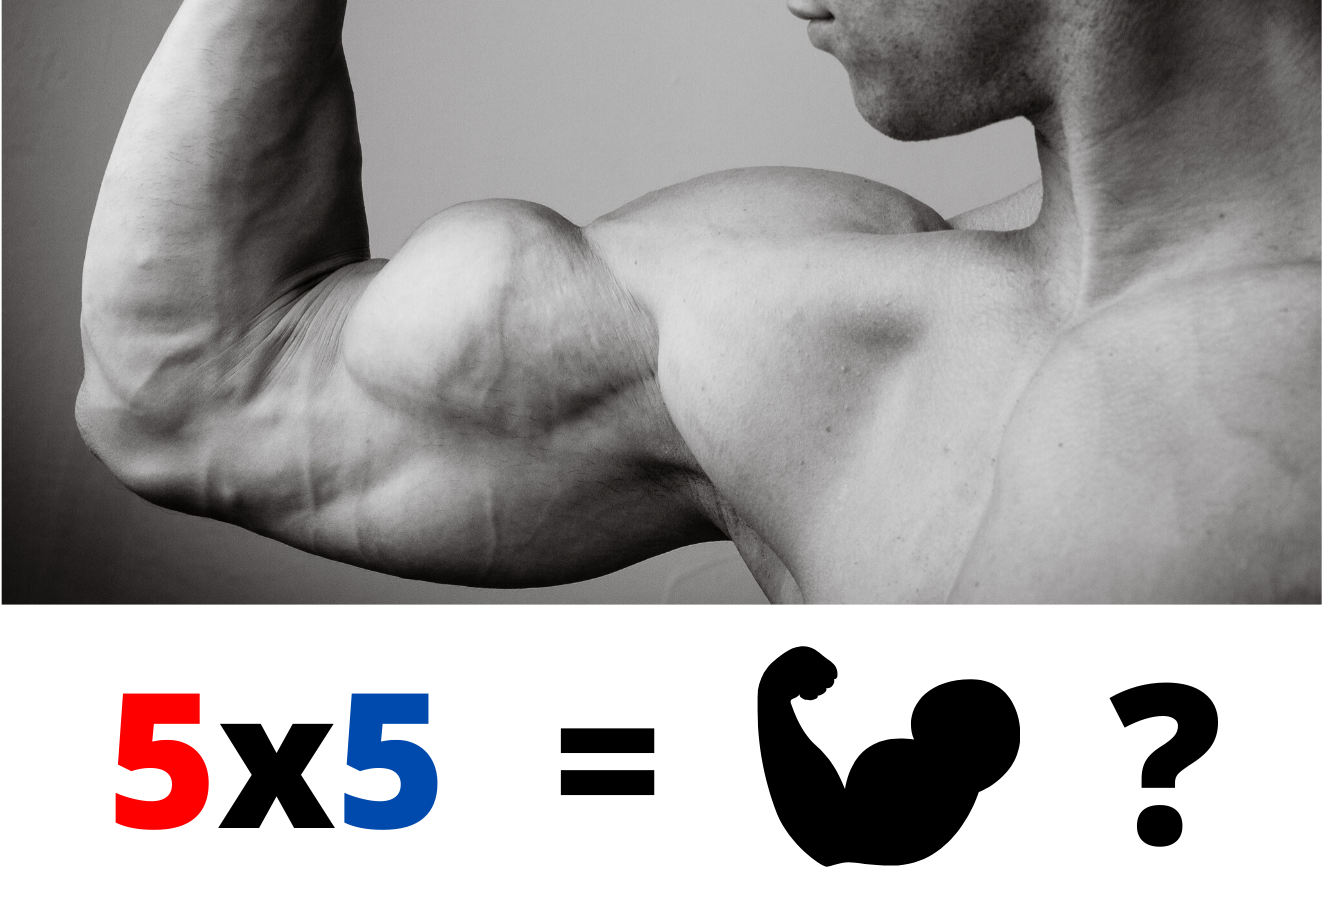 5x5 training for biceps or triceps? Guide to get huge arms !